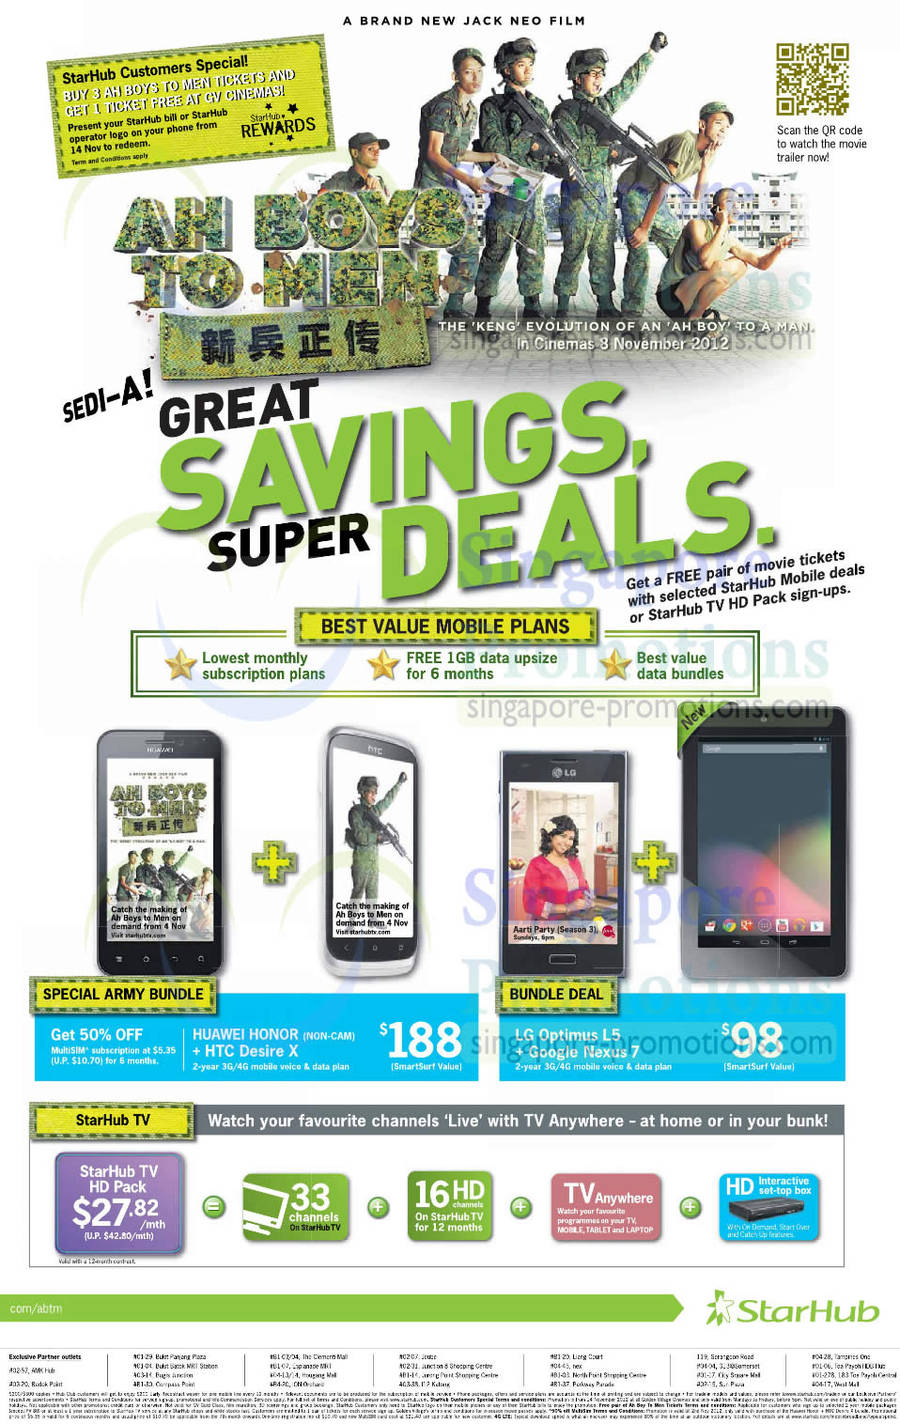 Army Bundle Huawei Honor n HTC Desire X, LG Optimus L5 n Google Nexus 7, Cable TV